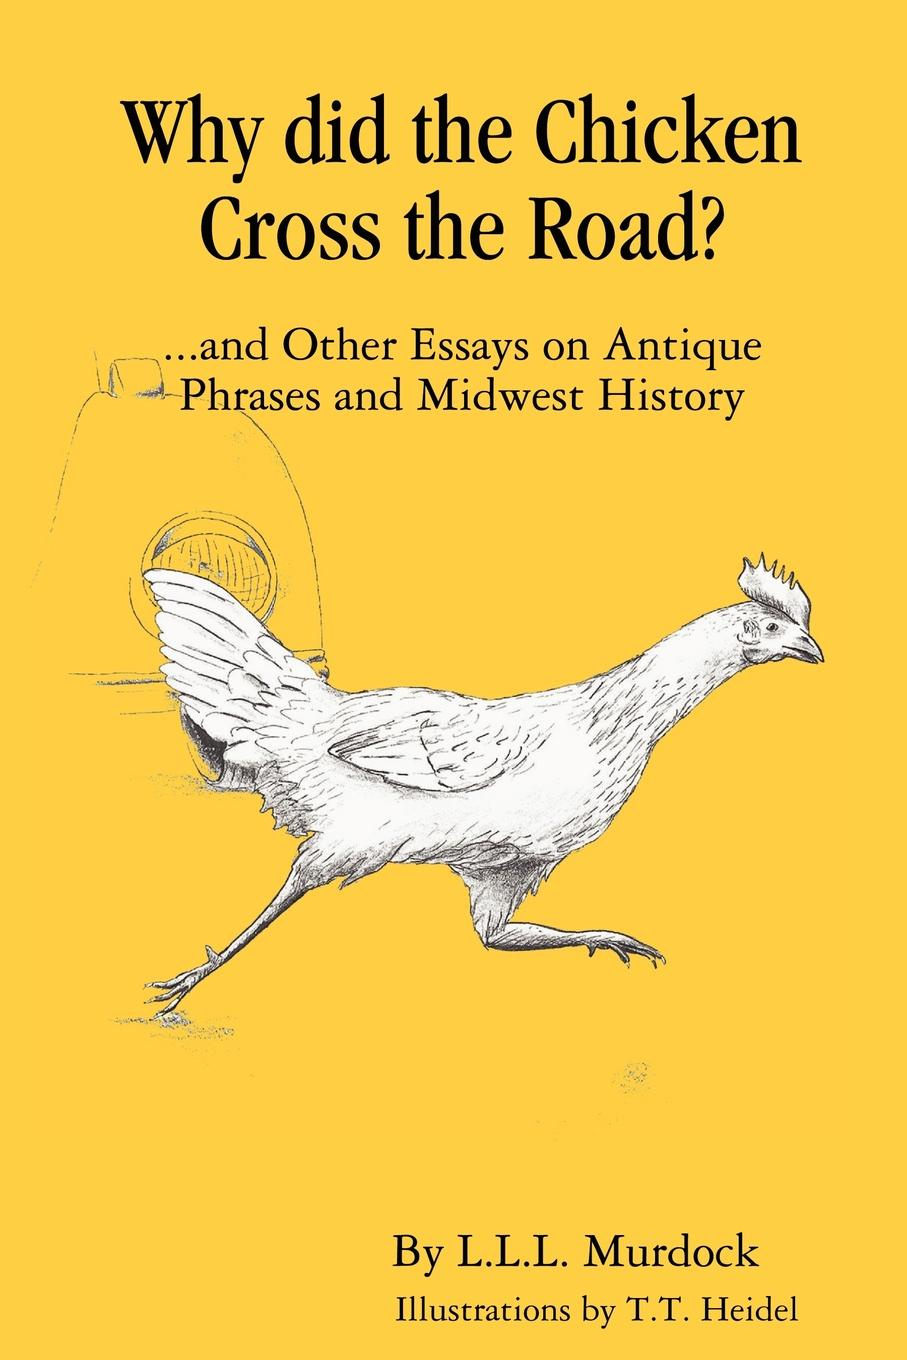 Larry Murdock Why Did the Chicken Cross the Road. history of the silk road